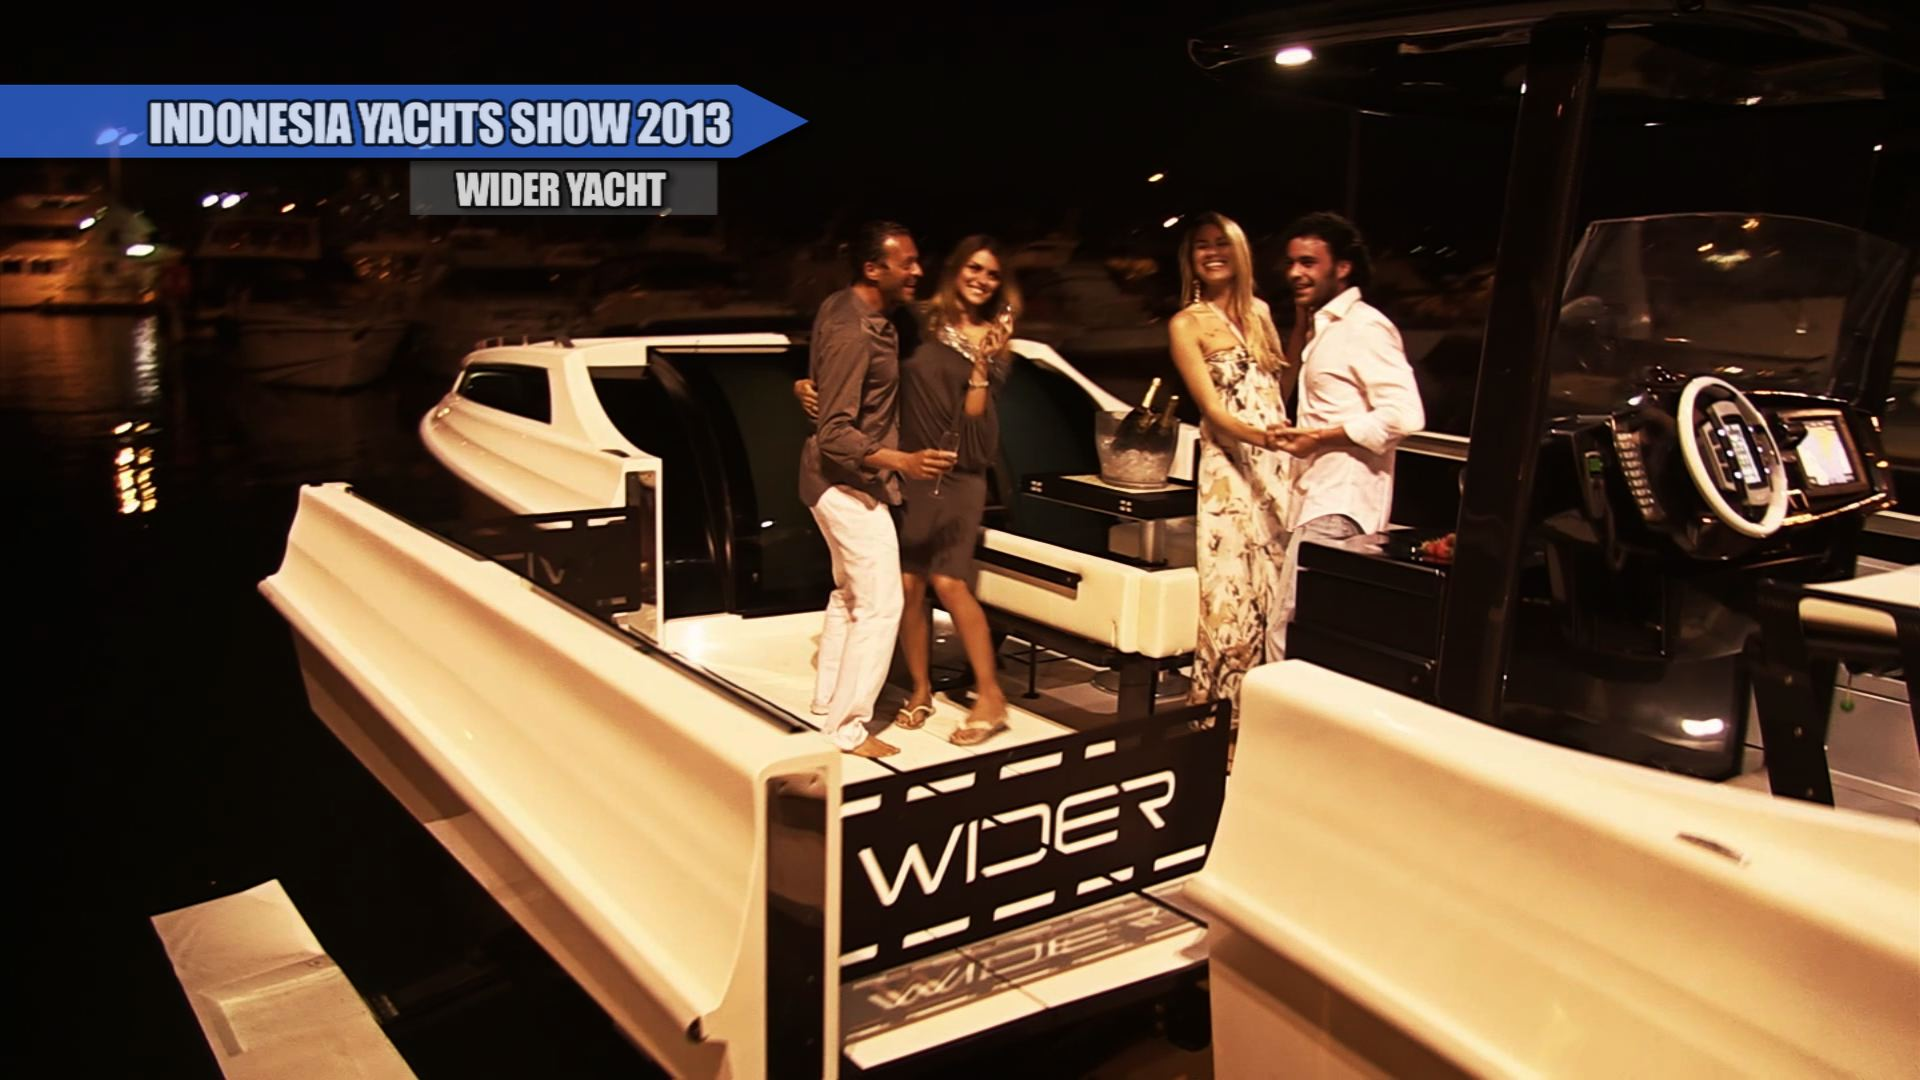 Wider Yachts (Indonesia Yachts Show 2013)